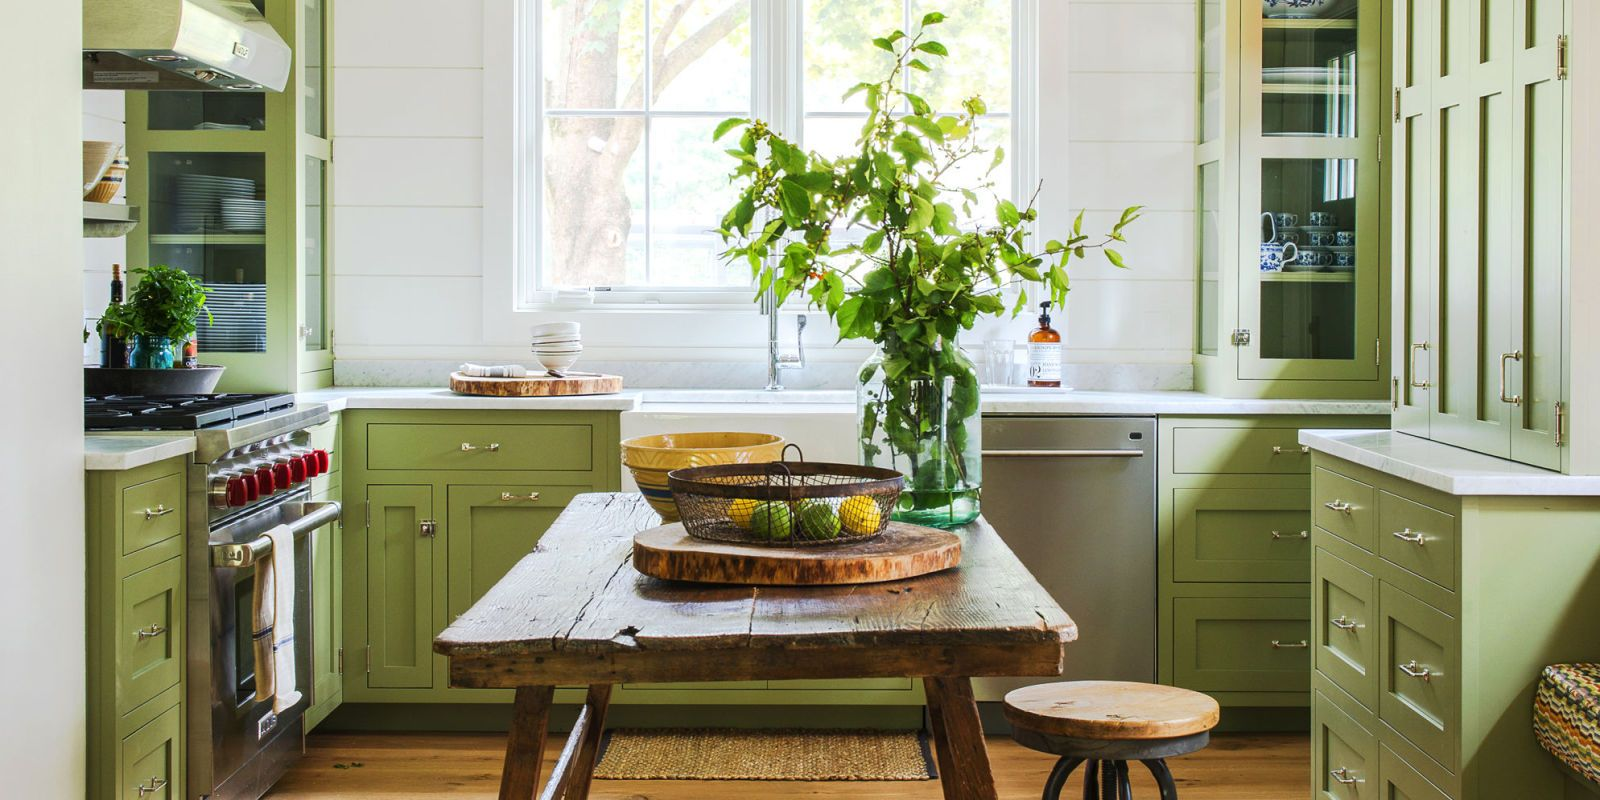 17 Colorful Kitchens That Look So Inviting